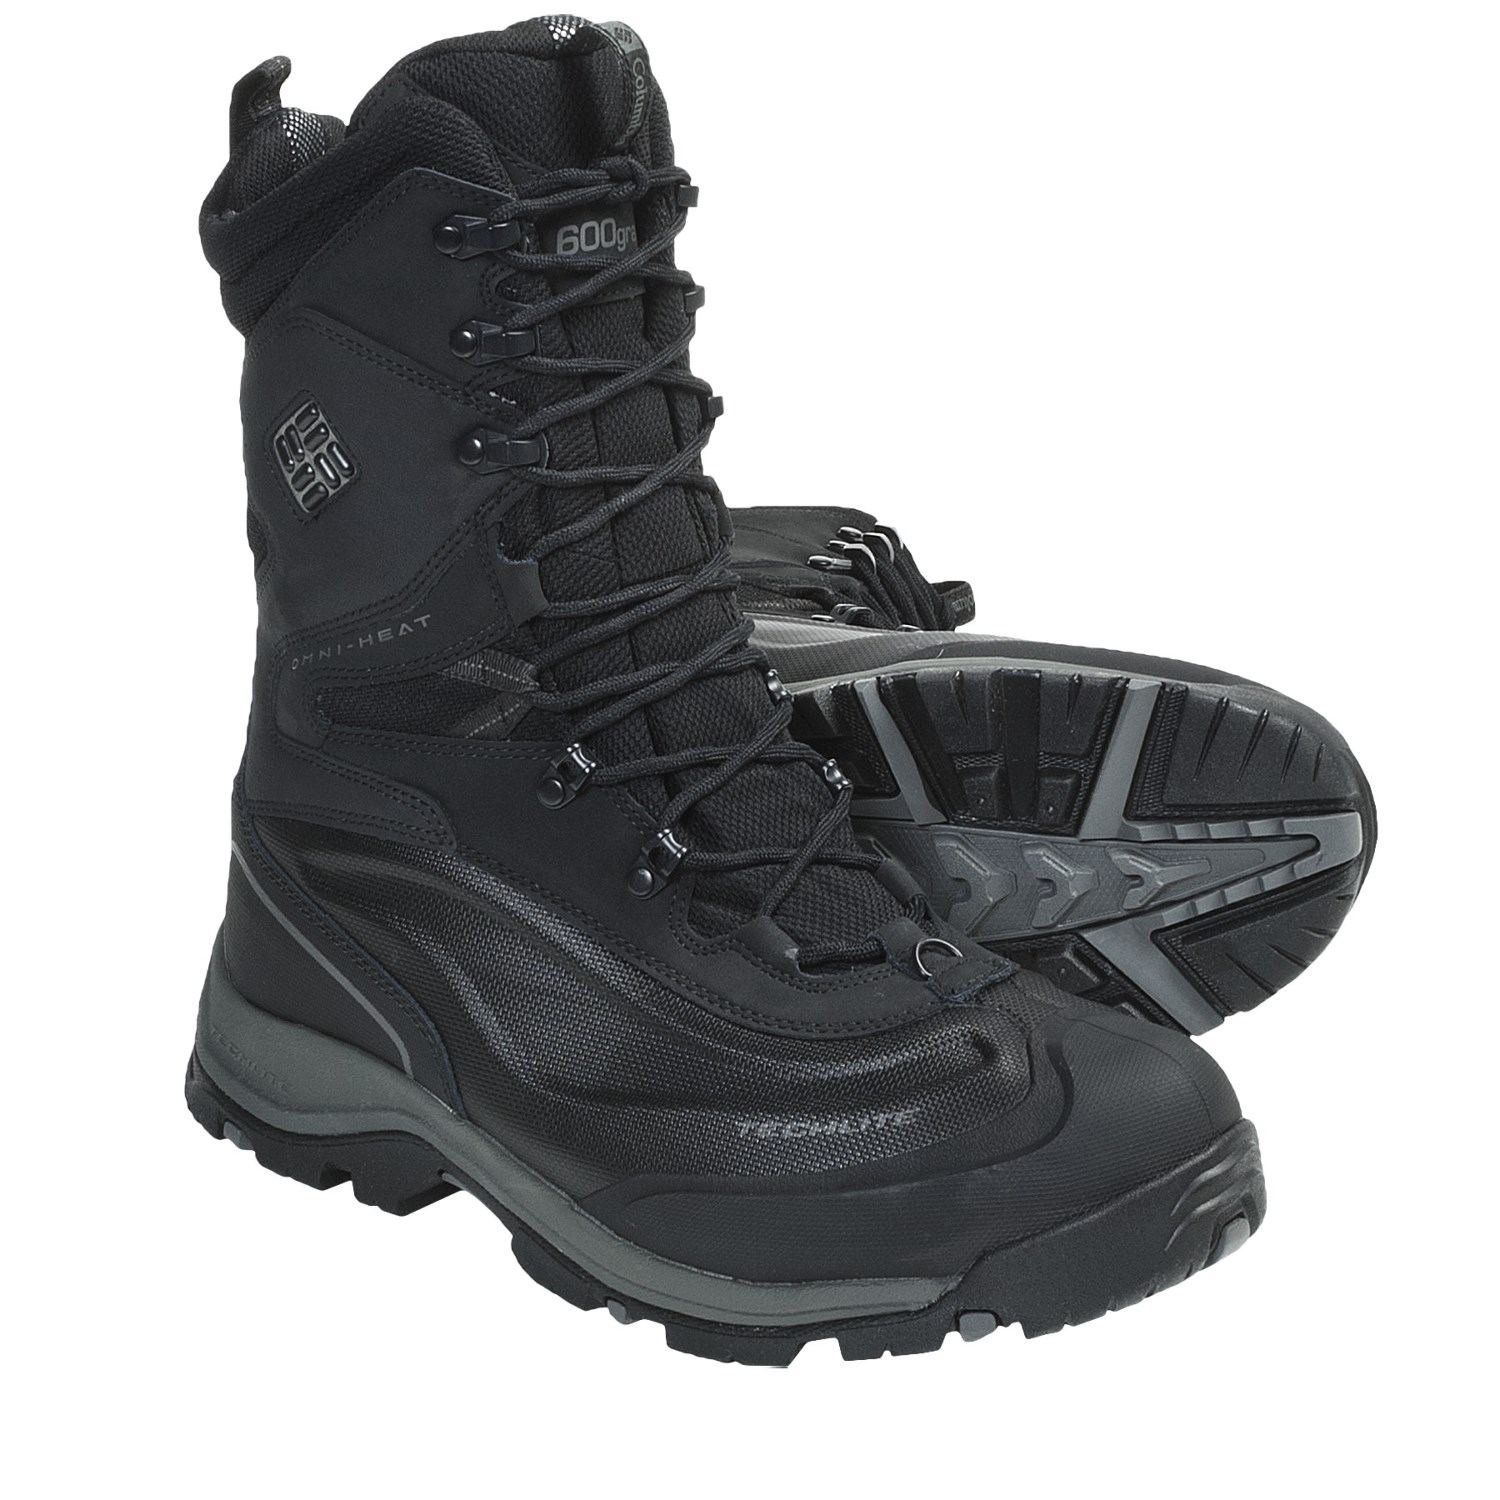 Enjoy free shipping and easy returns every day at Kohl's. Find great deals on Mens Columbia Boots at Kohl's today!